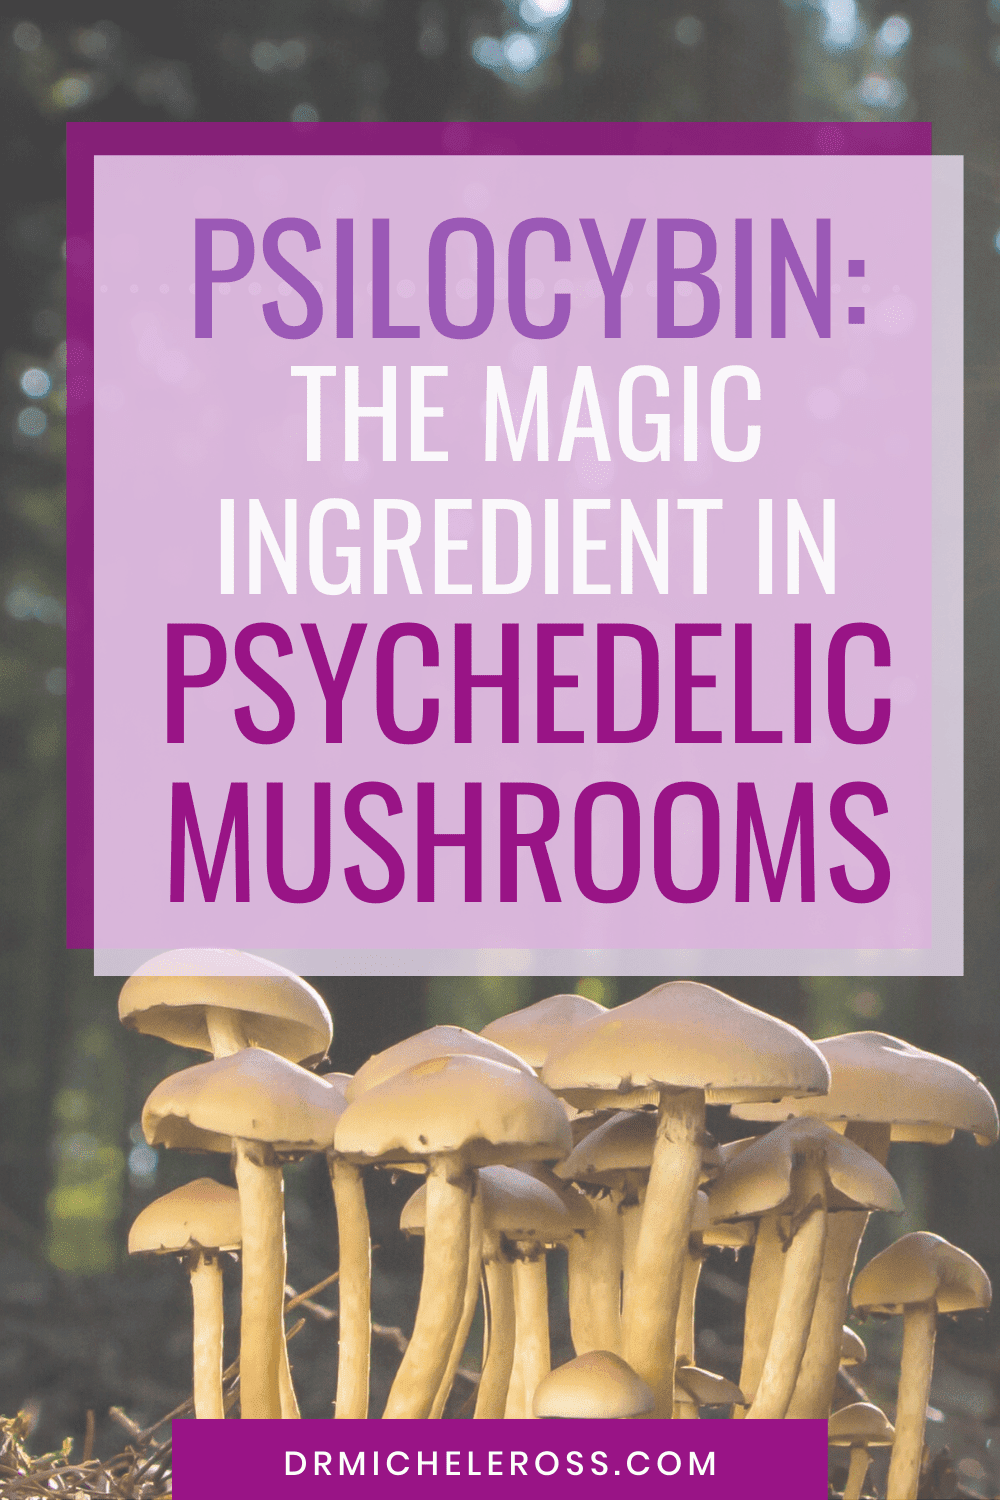 Psilocybin: The Magic Ingredient in Psychedelic Mushrooms